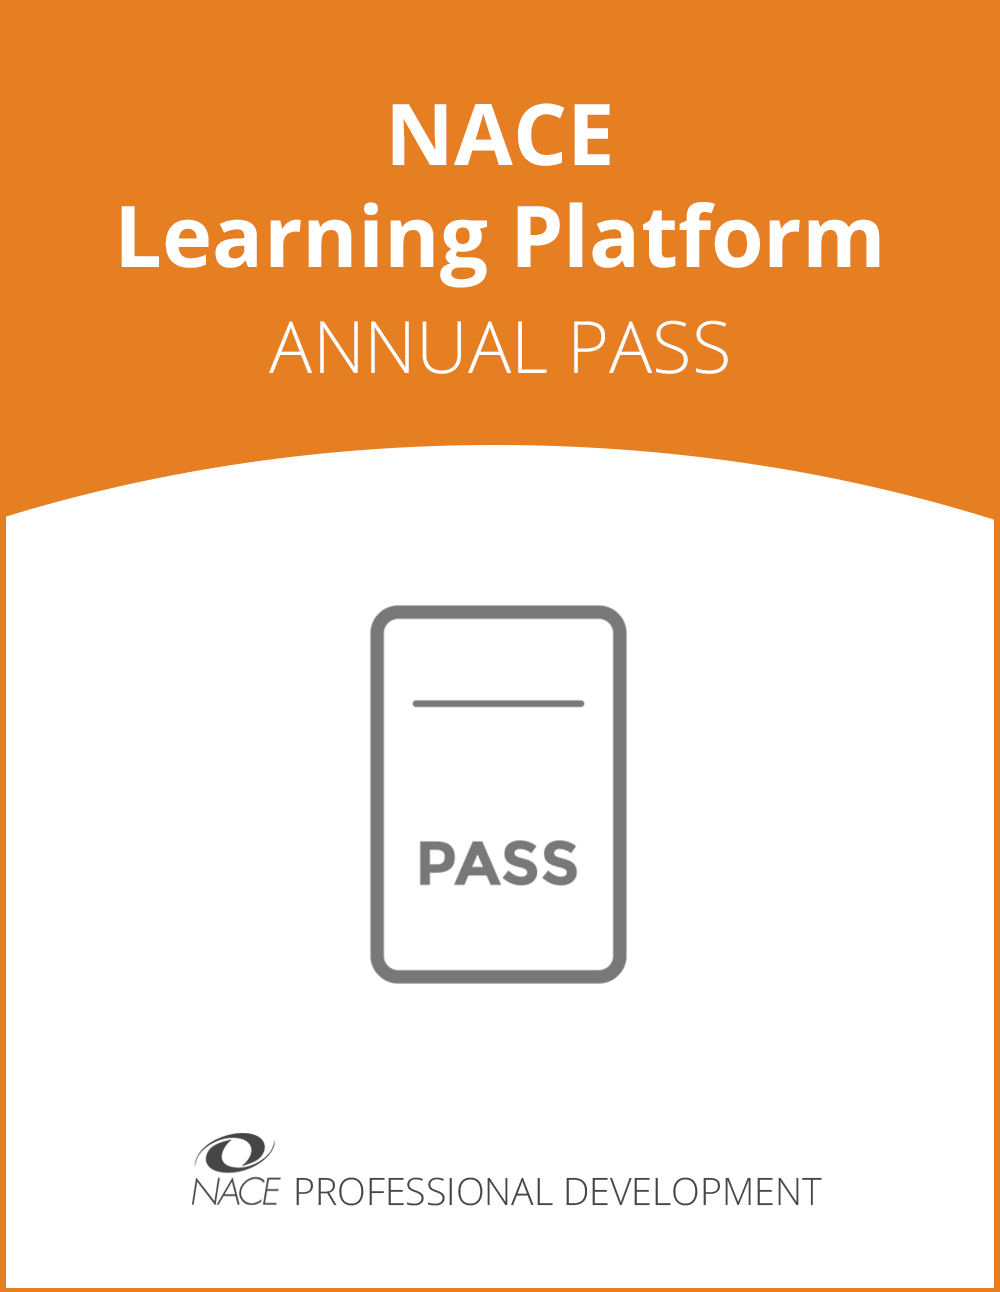 NACE Learning Platform Annual Pass